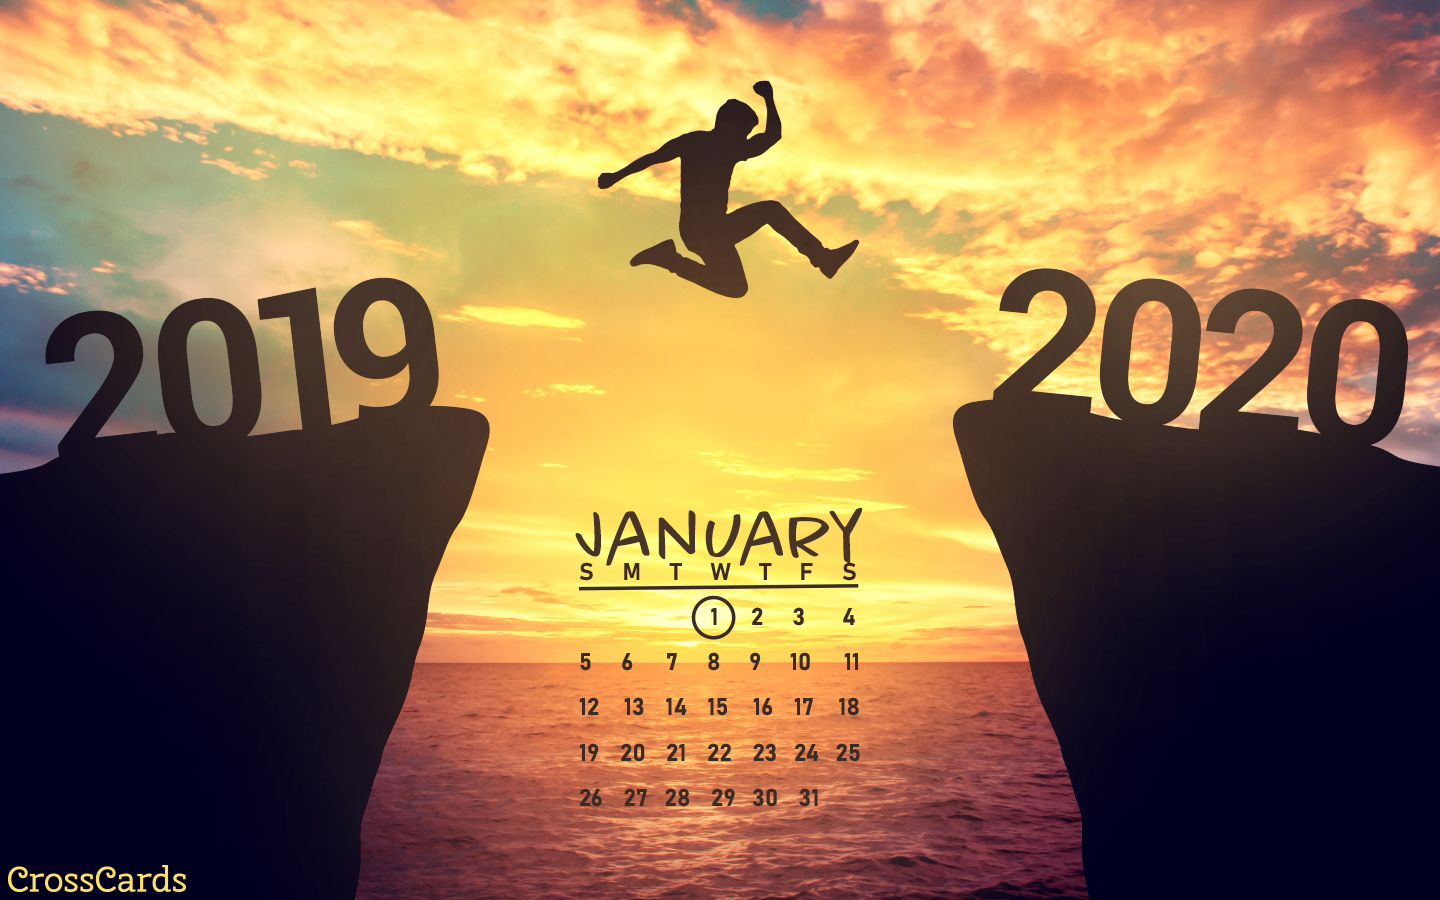 January 2020 - Jump into the New Year mobile phone wallpaper